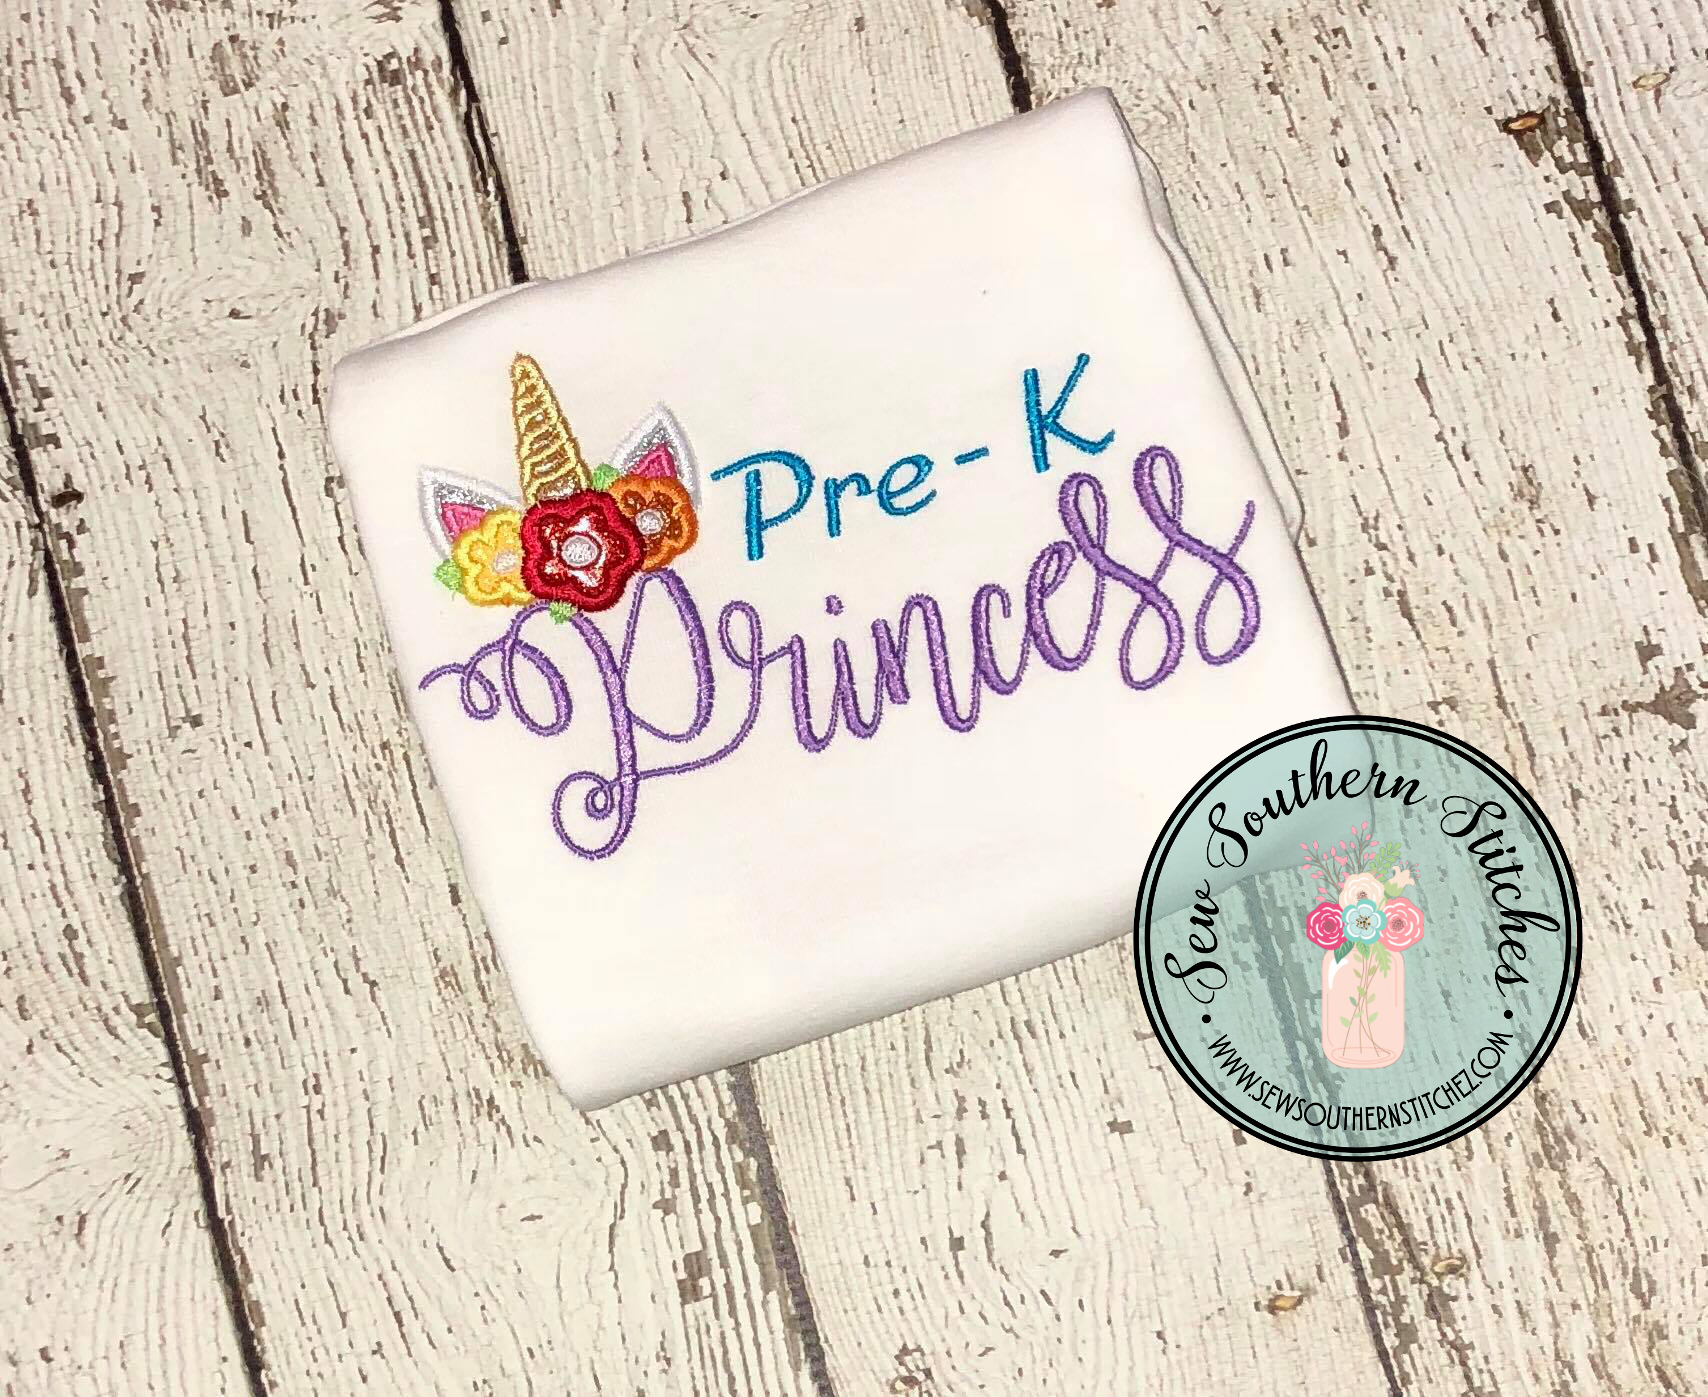 Pre K Unicorn Princess Embroidery Design Girls Back To School